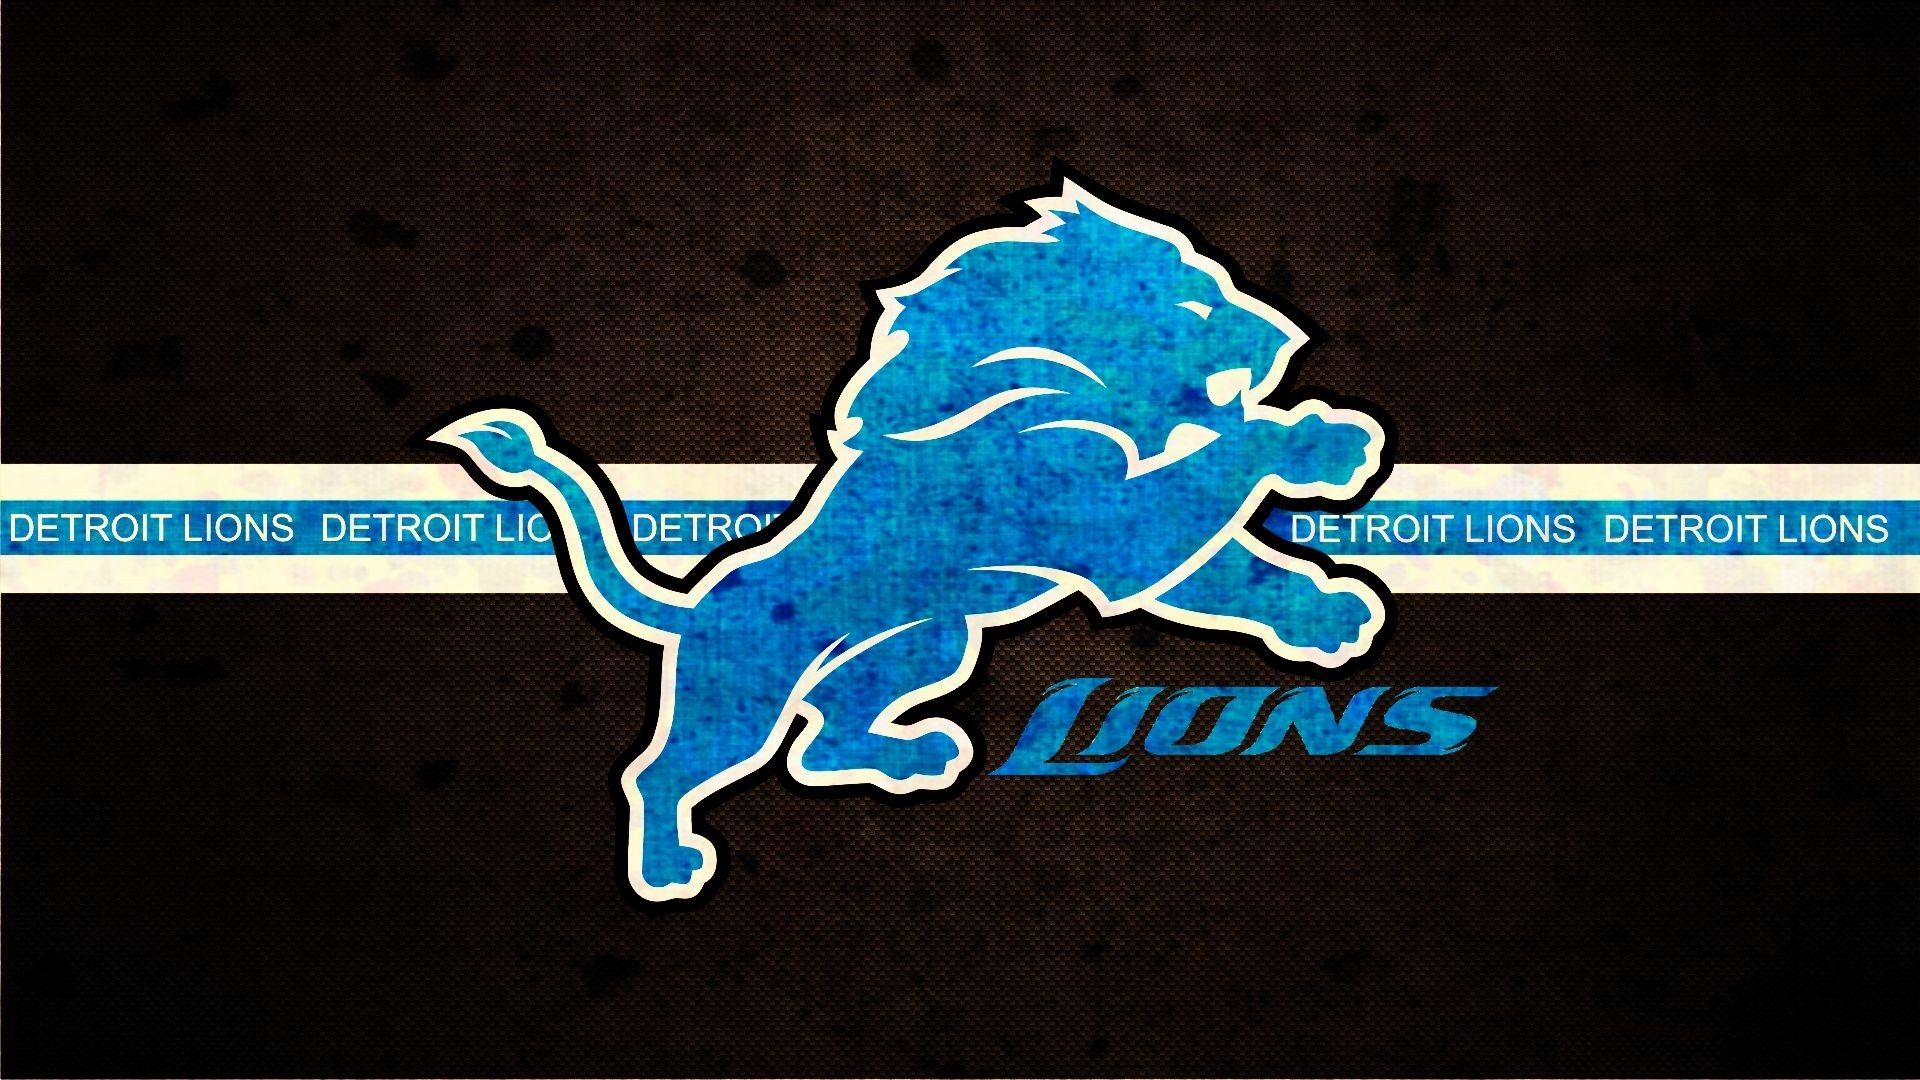 03a74bc5 HD Desktop Wallpaper Detroit Lions | Wallpapers | Detroit lions ...